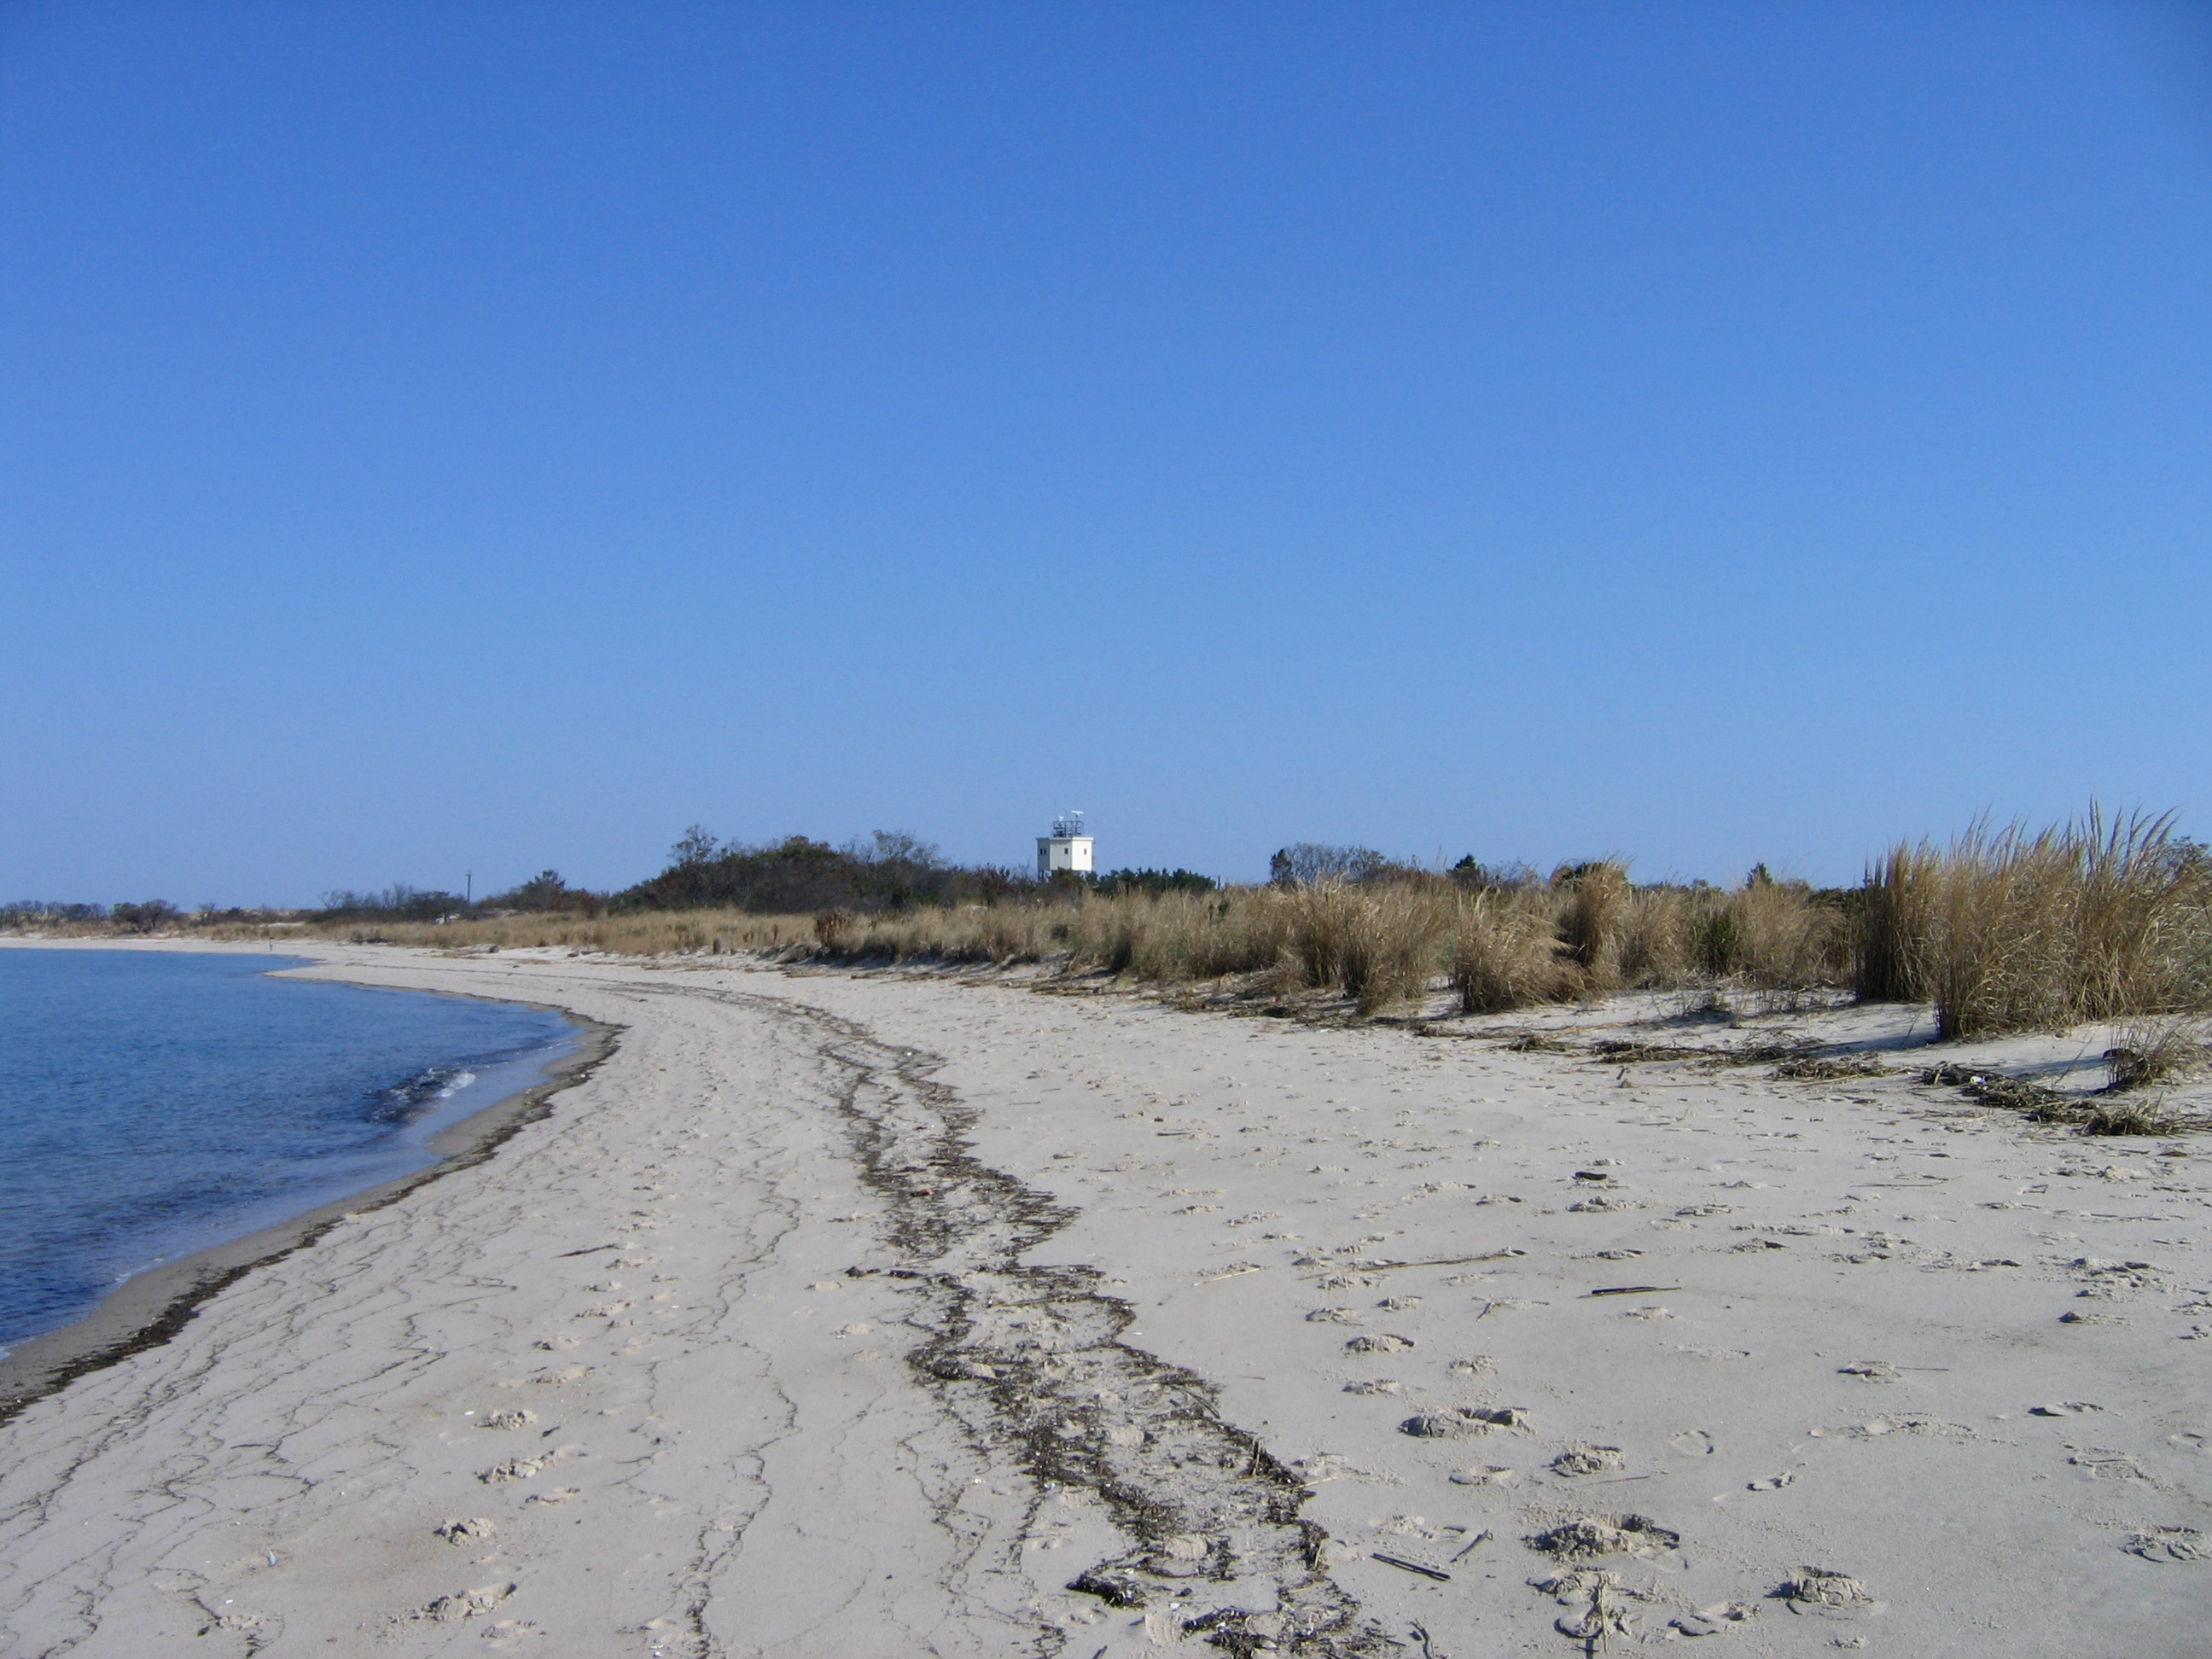 About cape henlopen state park in lewes delaware active for Fishing in delaware